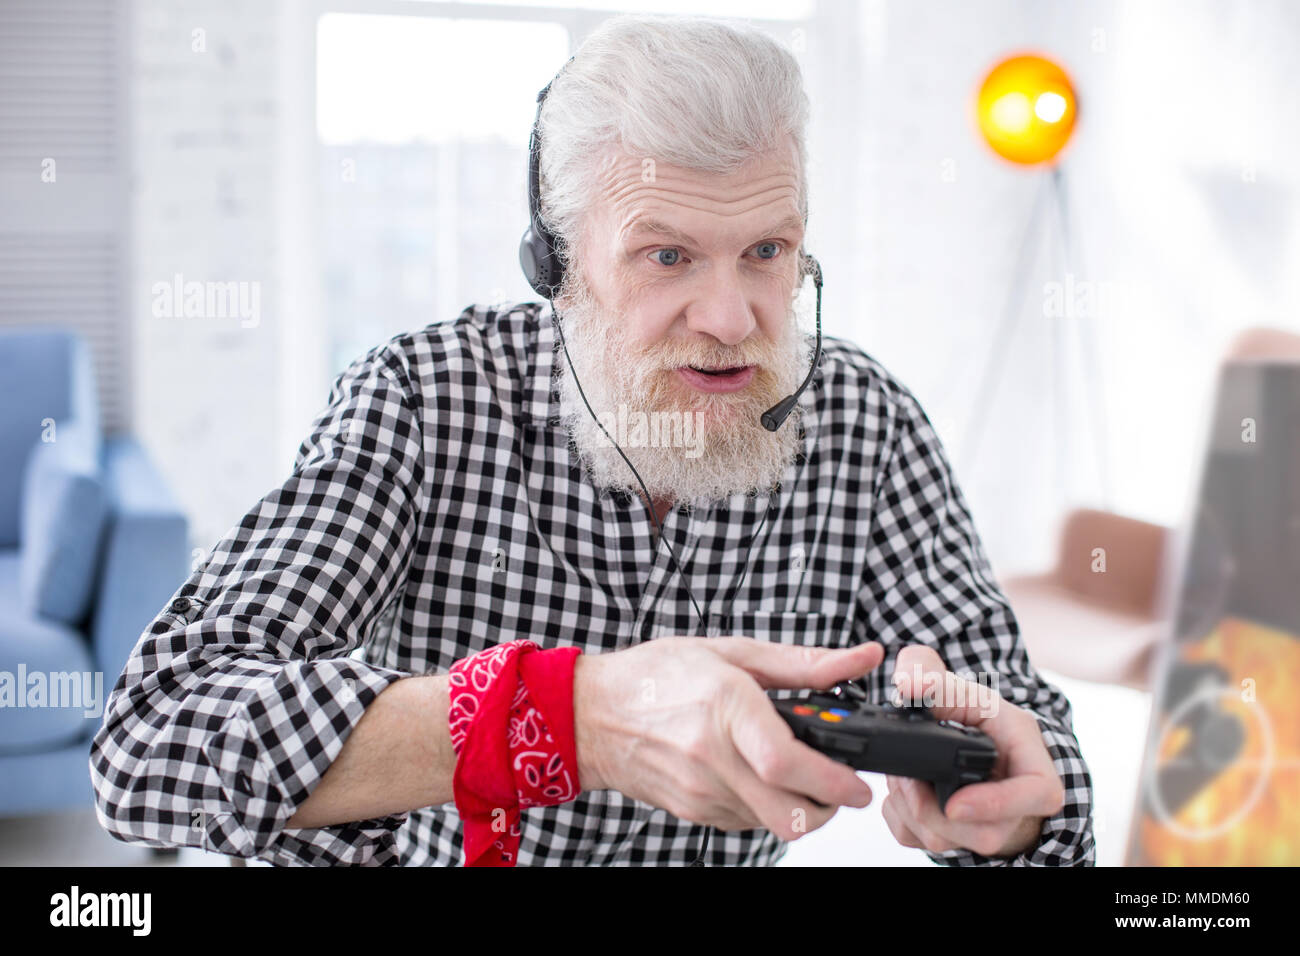 Bearded senior man being immersed into playing video game - Stock Image